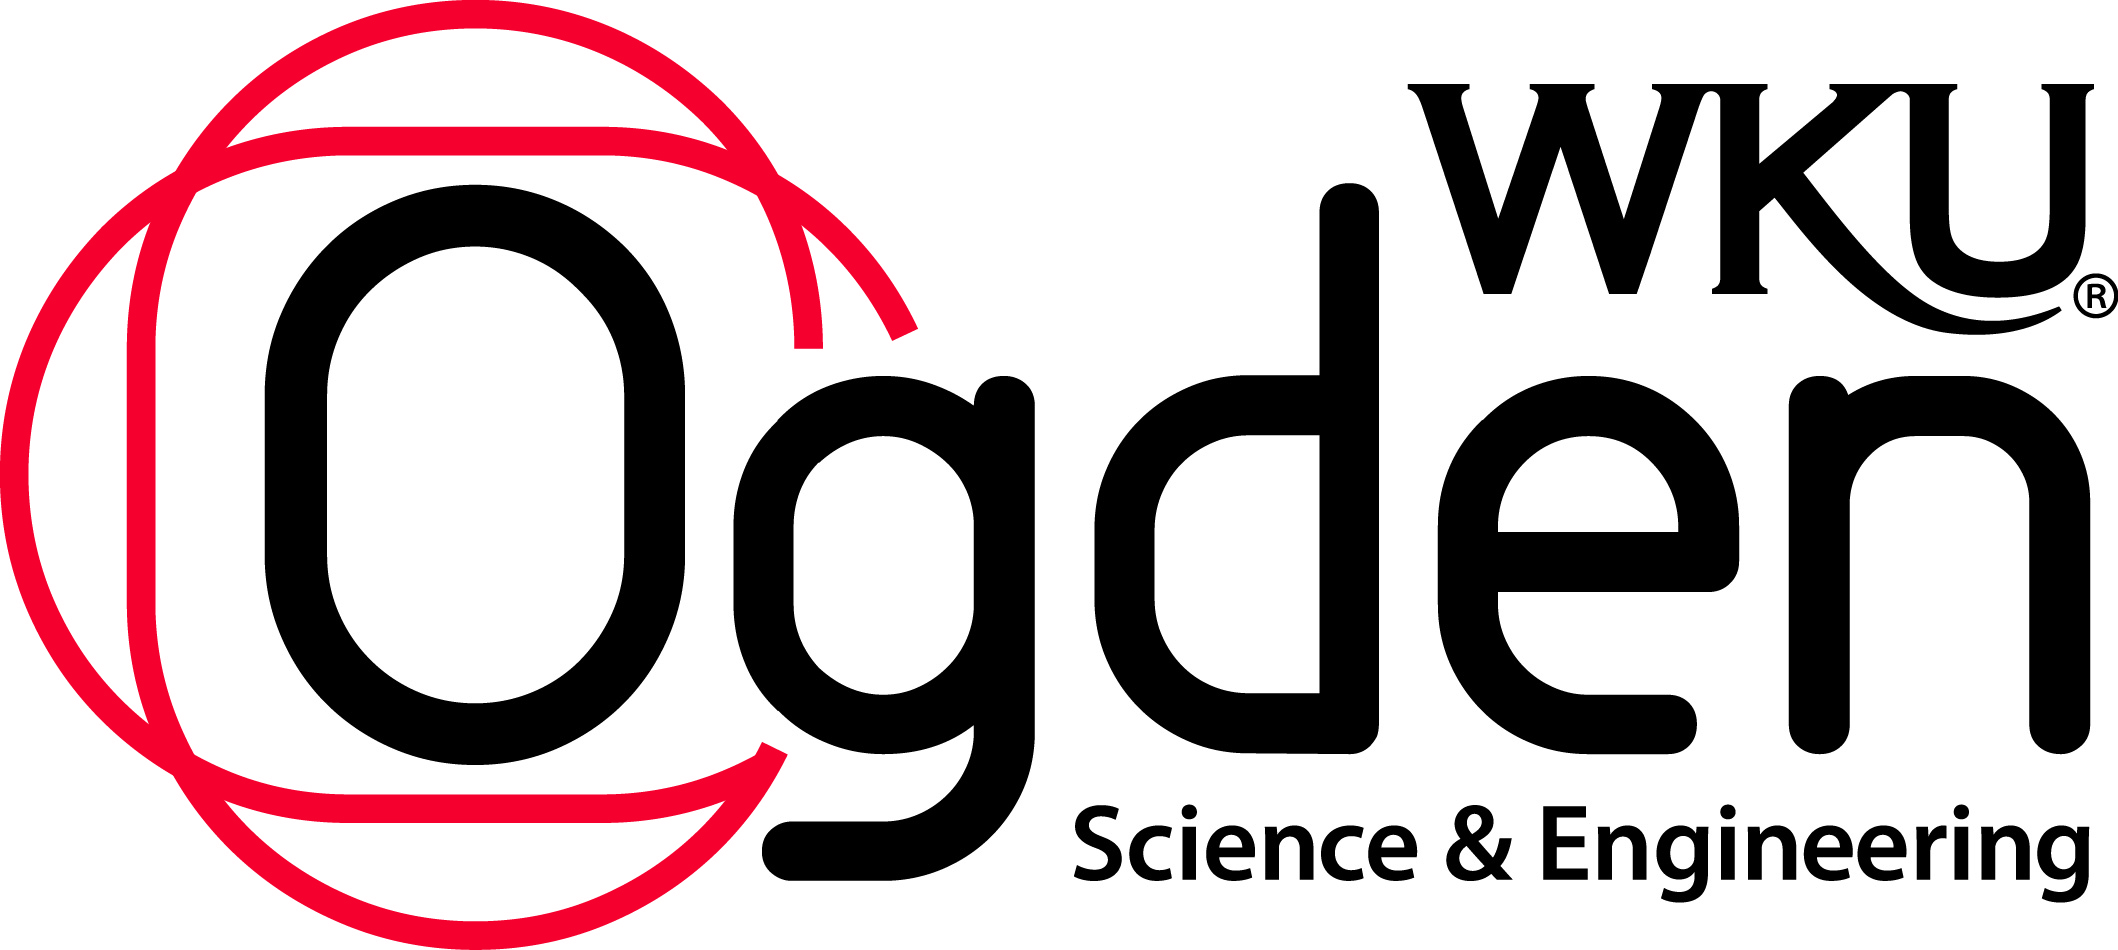 Ogden logo red and black version